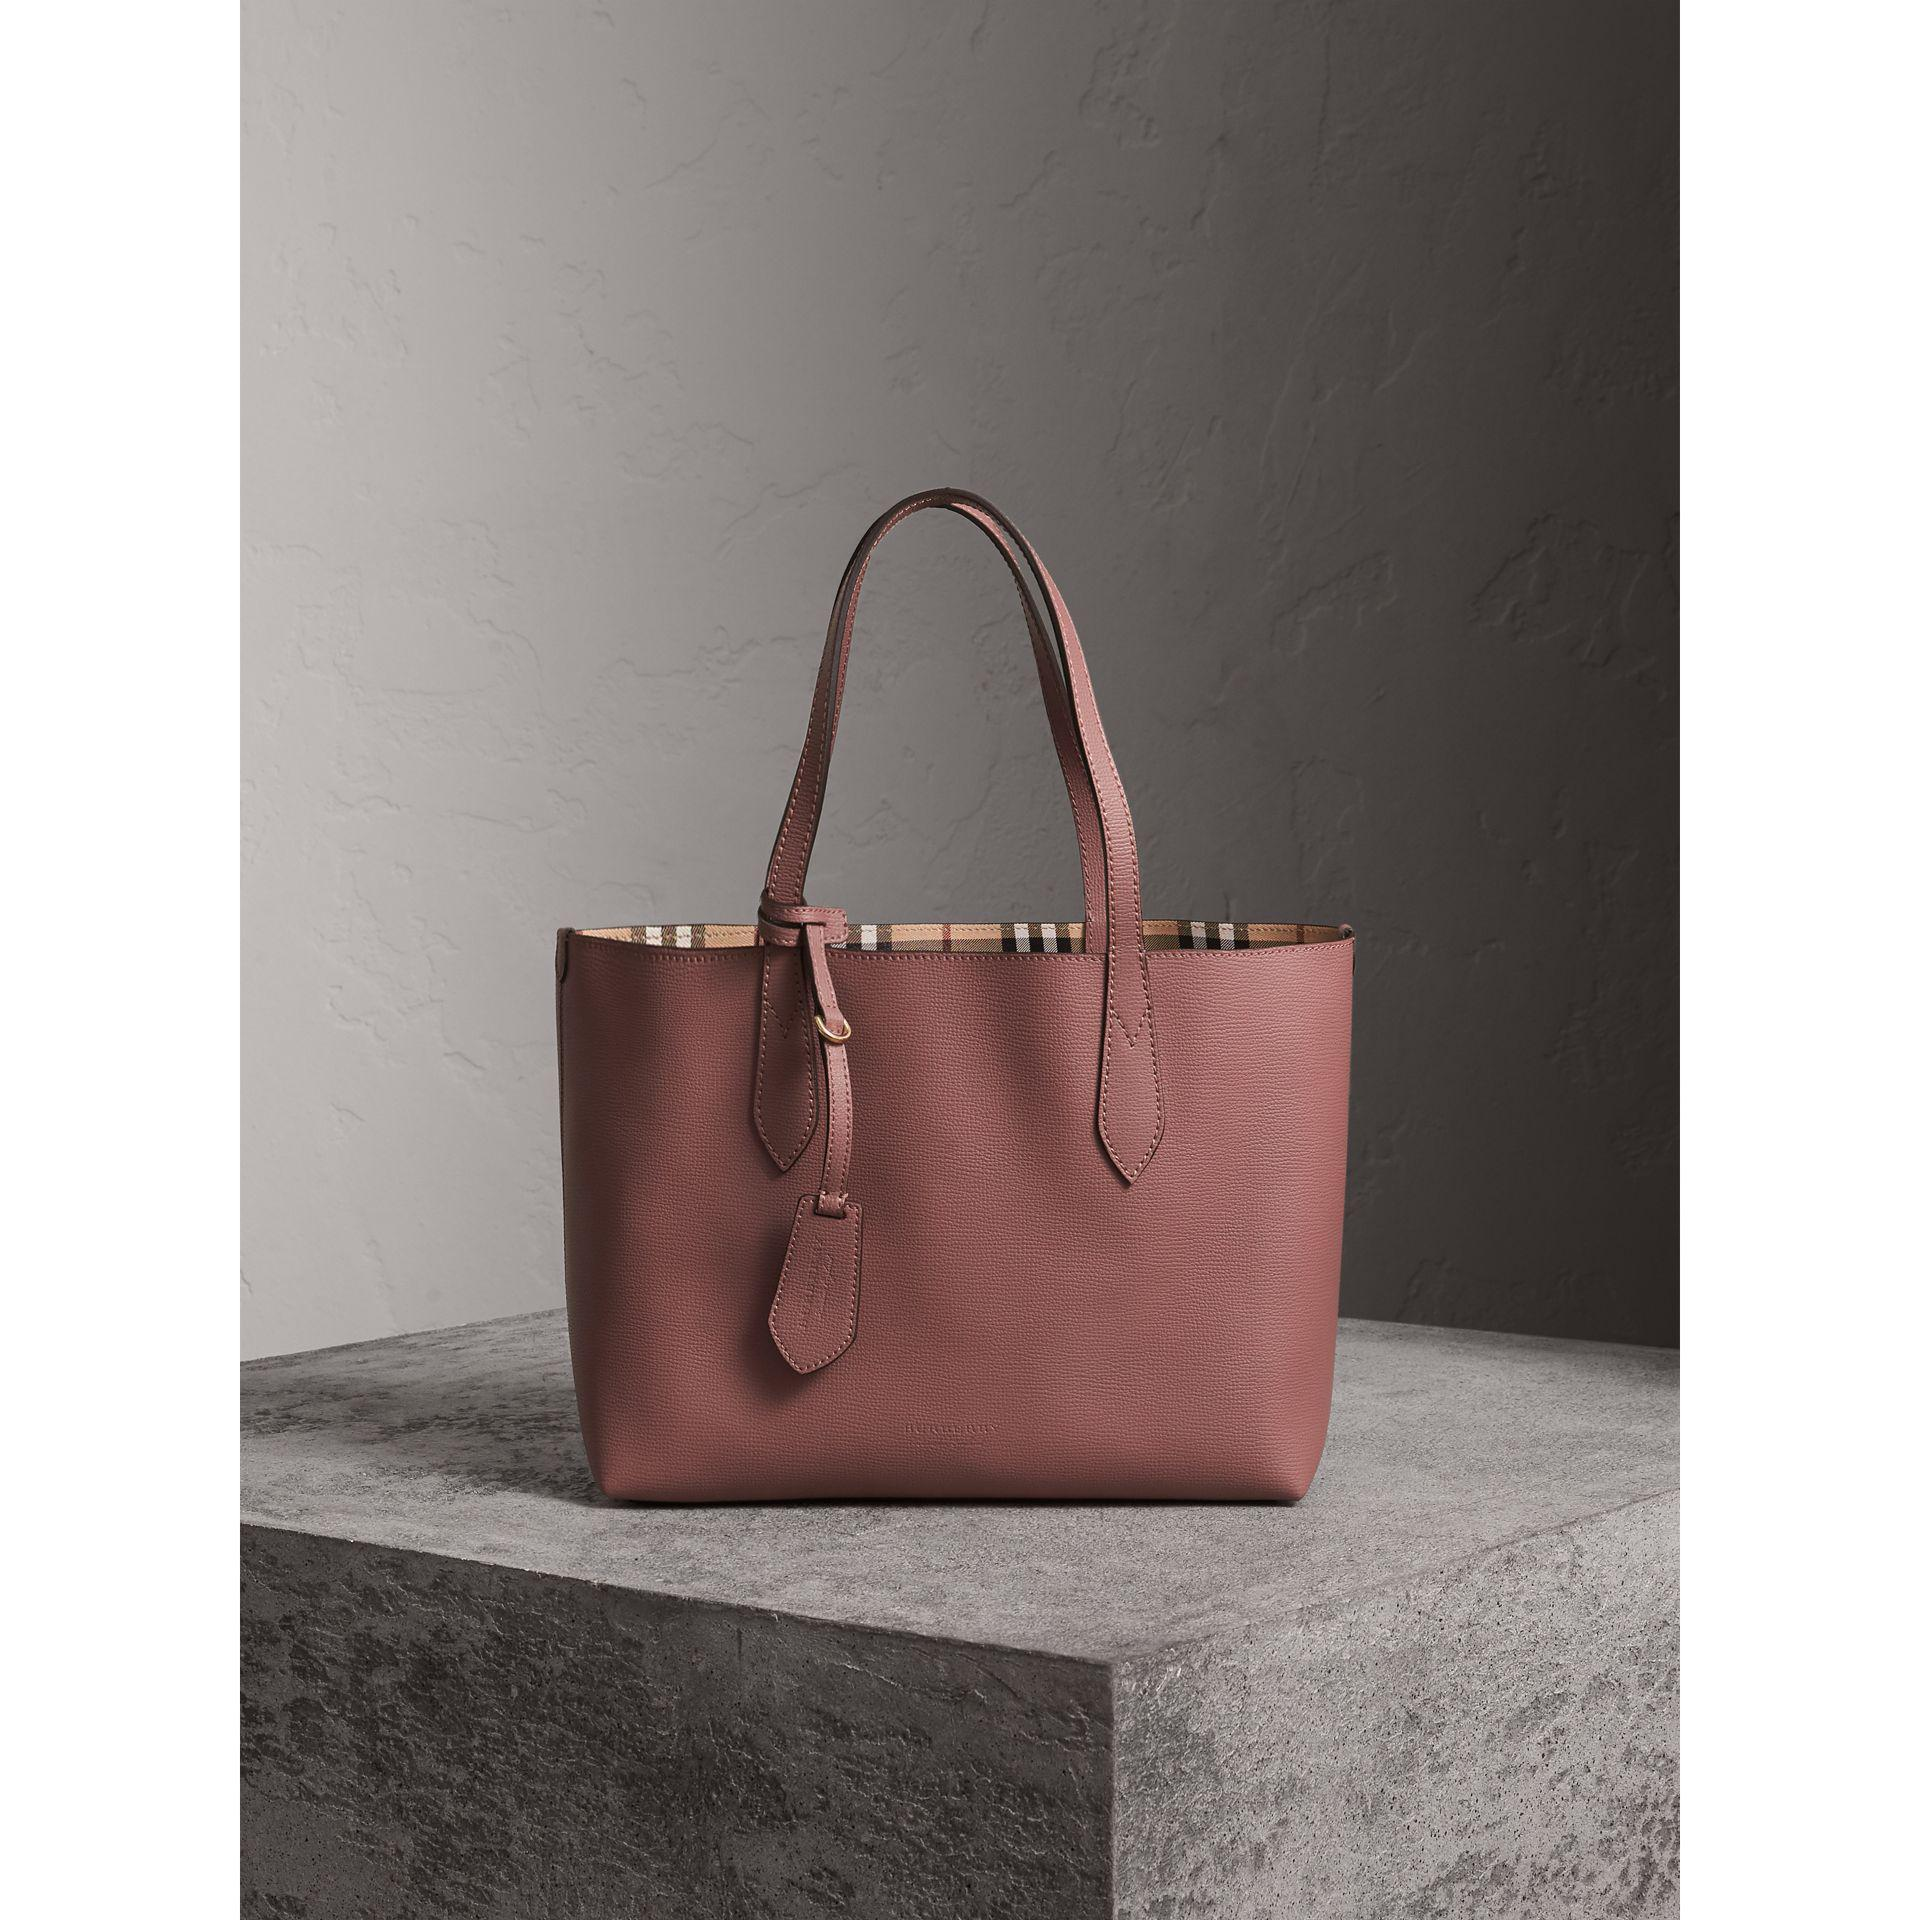 76c4960dc1dc Burberry The Small Reversible Tote In Haymarket Check And Leather ...